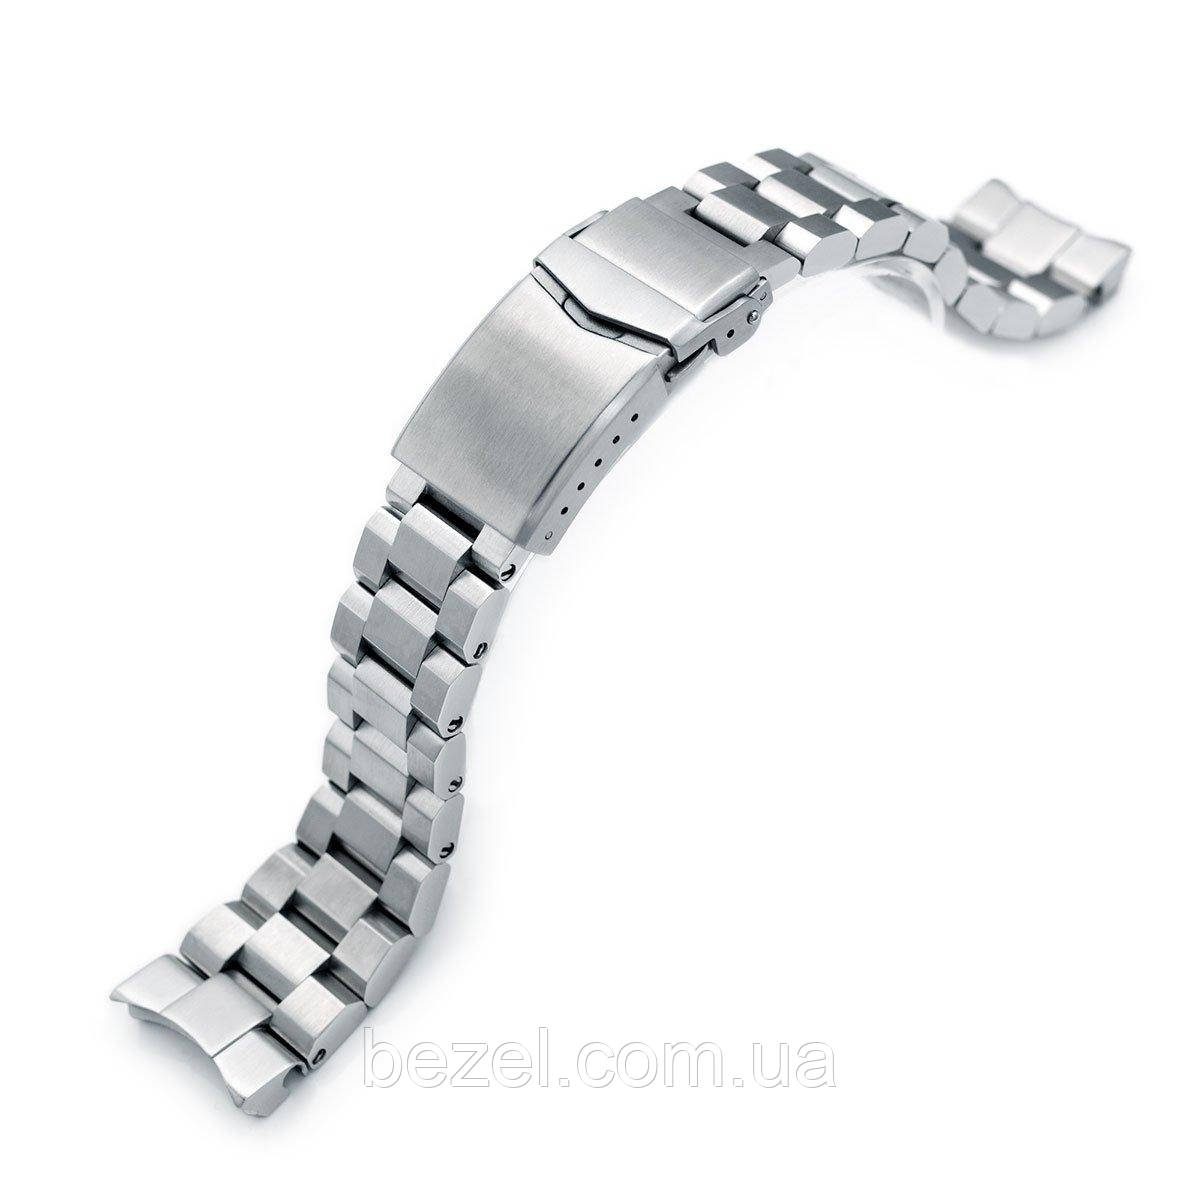 22mm Hexad Oyster 316L Stainless Steel Watch Band for Seiko Samurai SRPB51, V-Clasp Button Double Lock